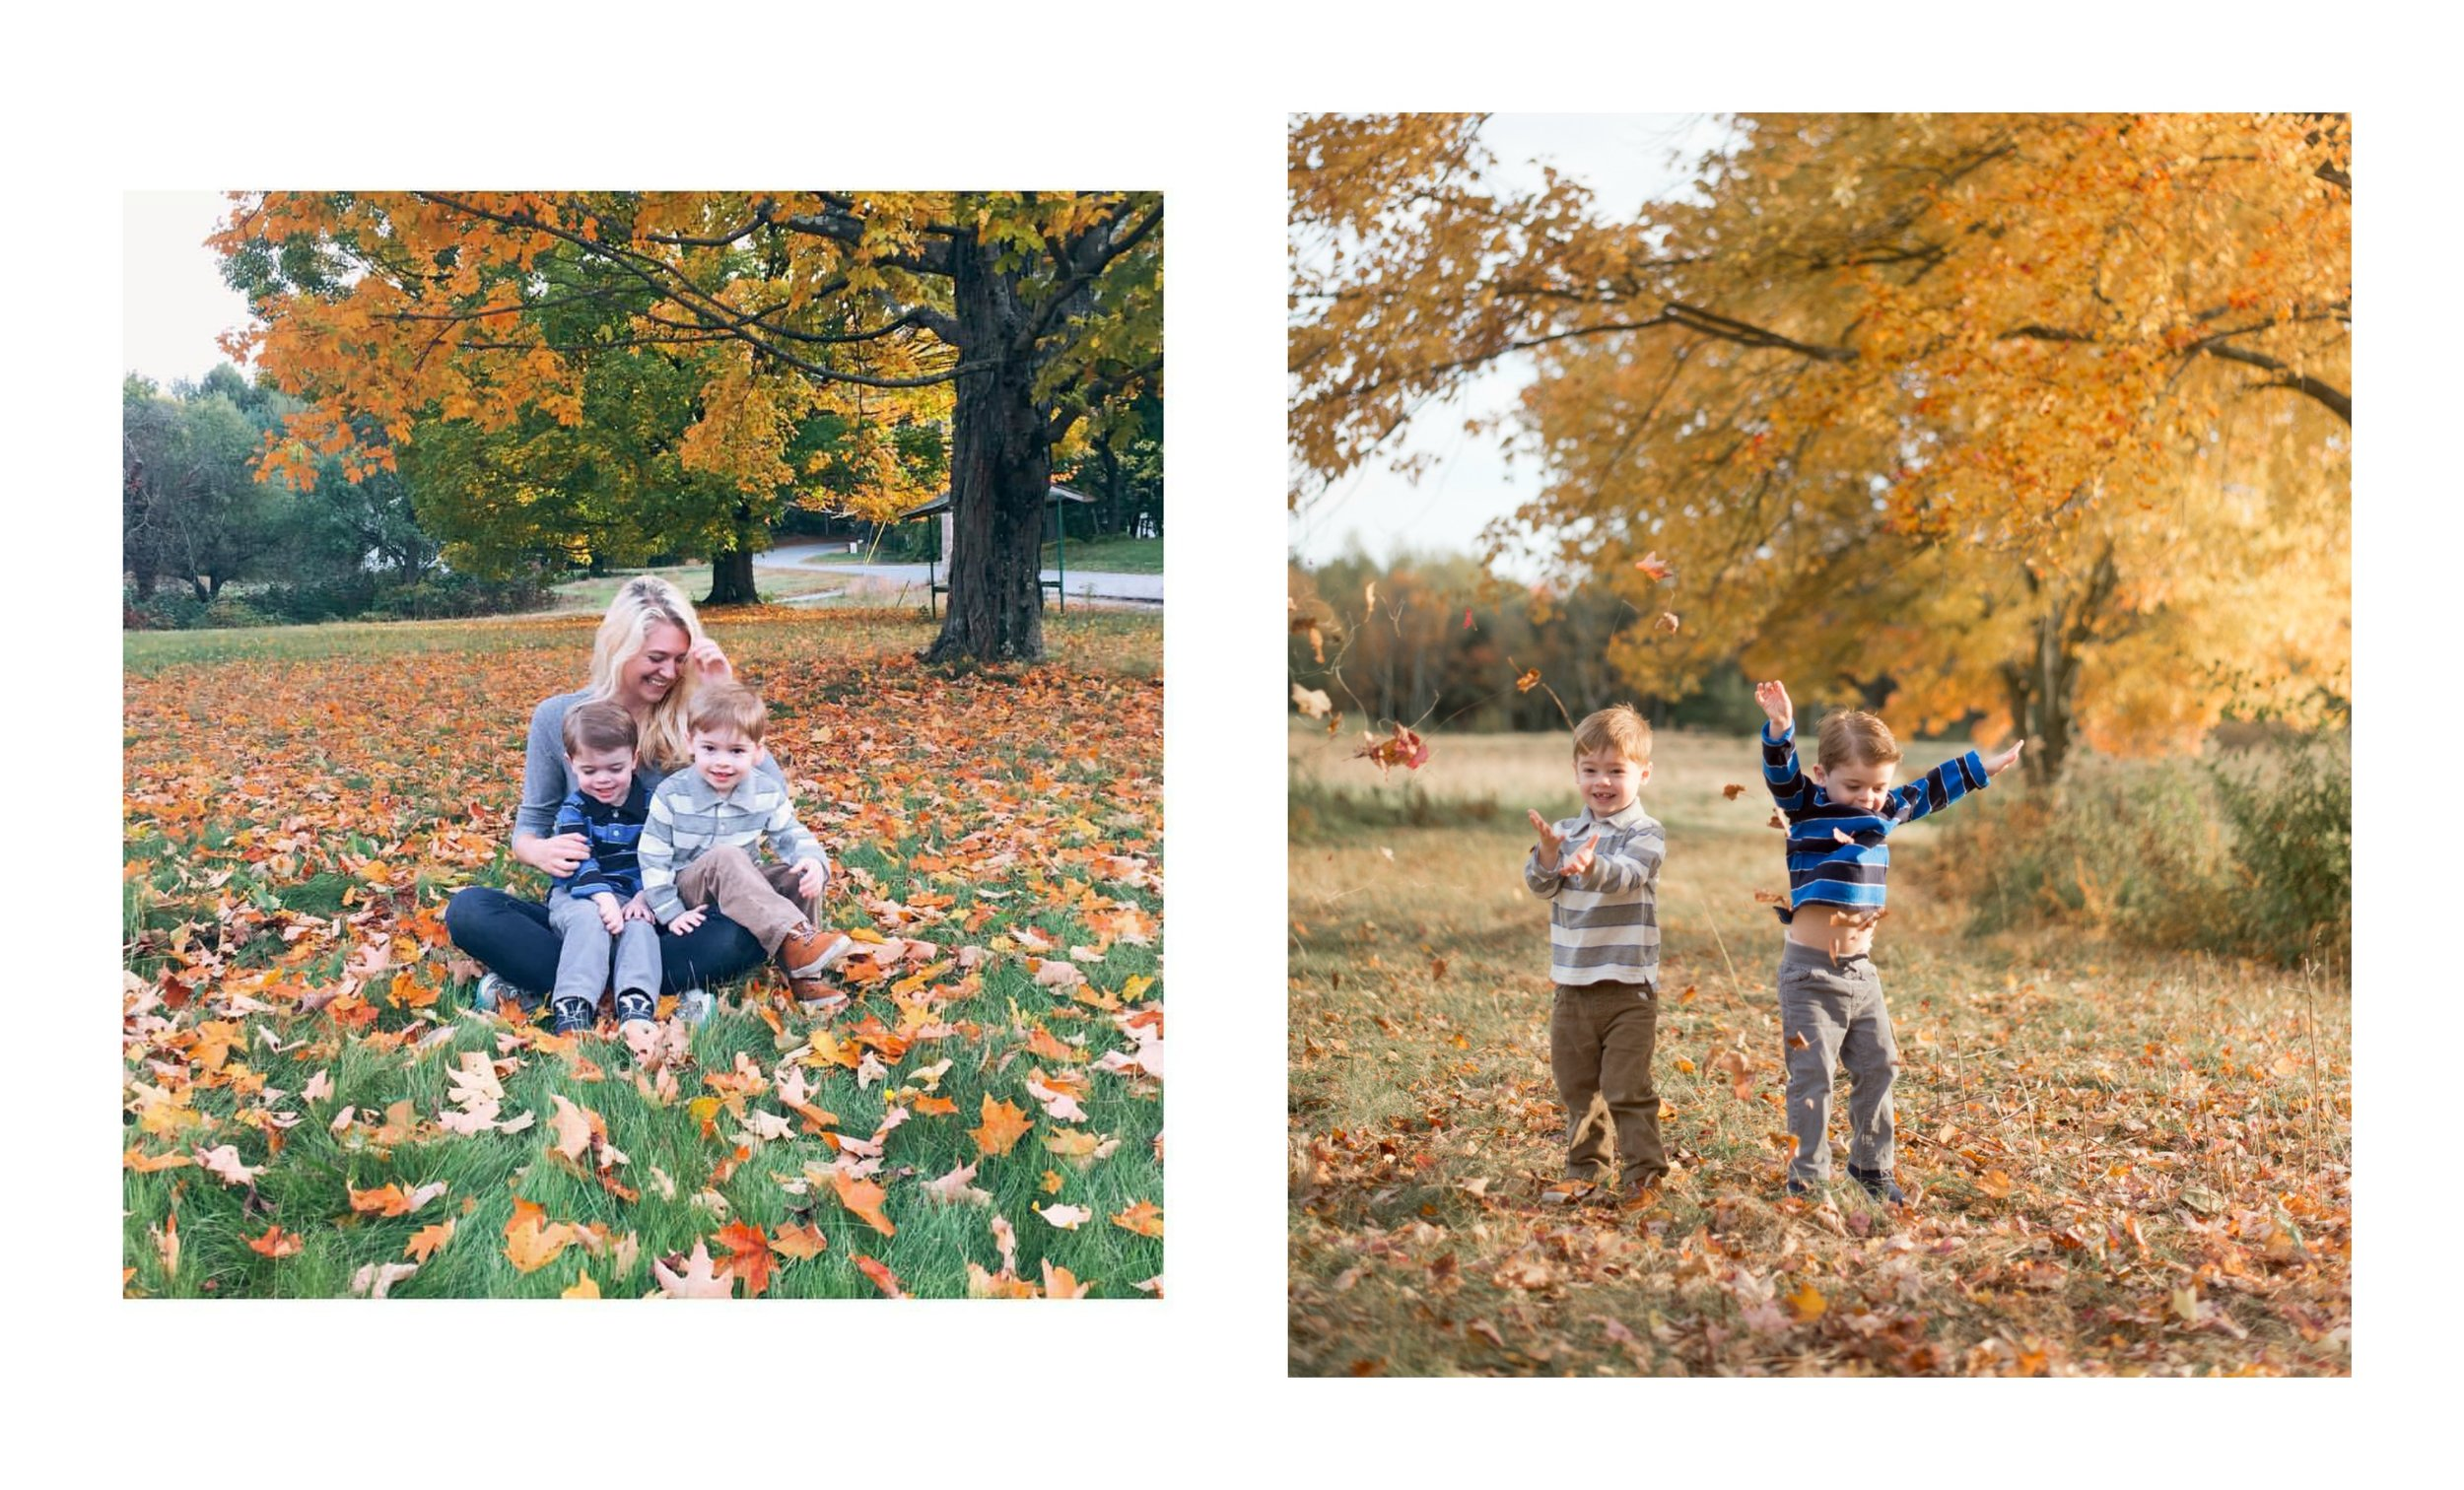 This was my first year meeting Mathew and Jonathan and I must say they were the two most adorable and well behaved boys I have ever had! We had a blast running around Pratt Farm and can't wait to do it again next fall!